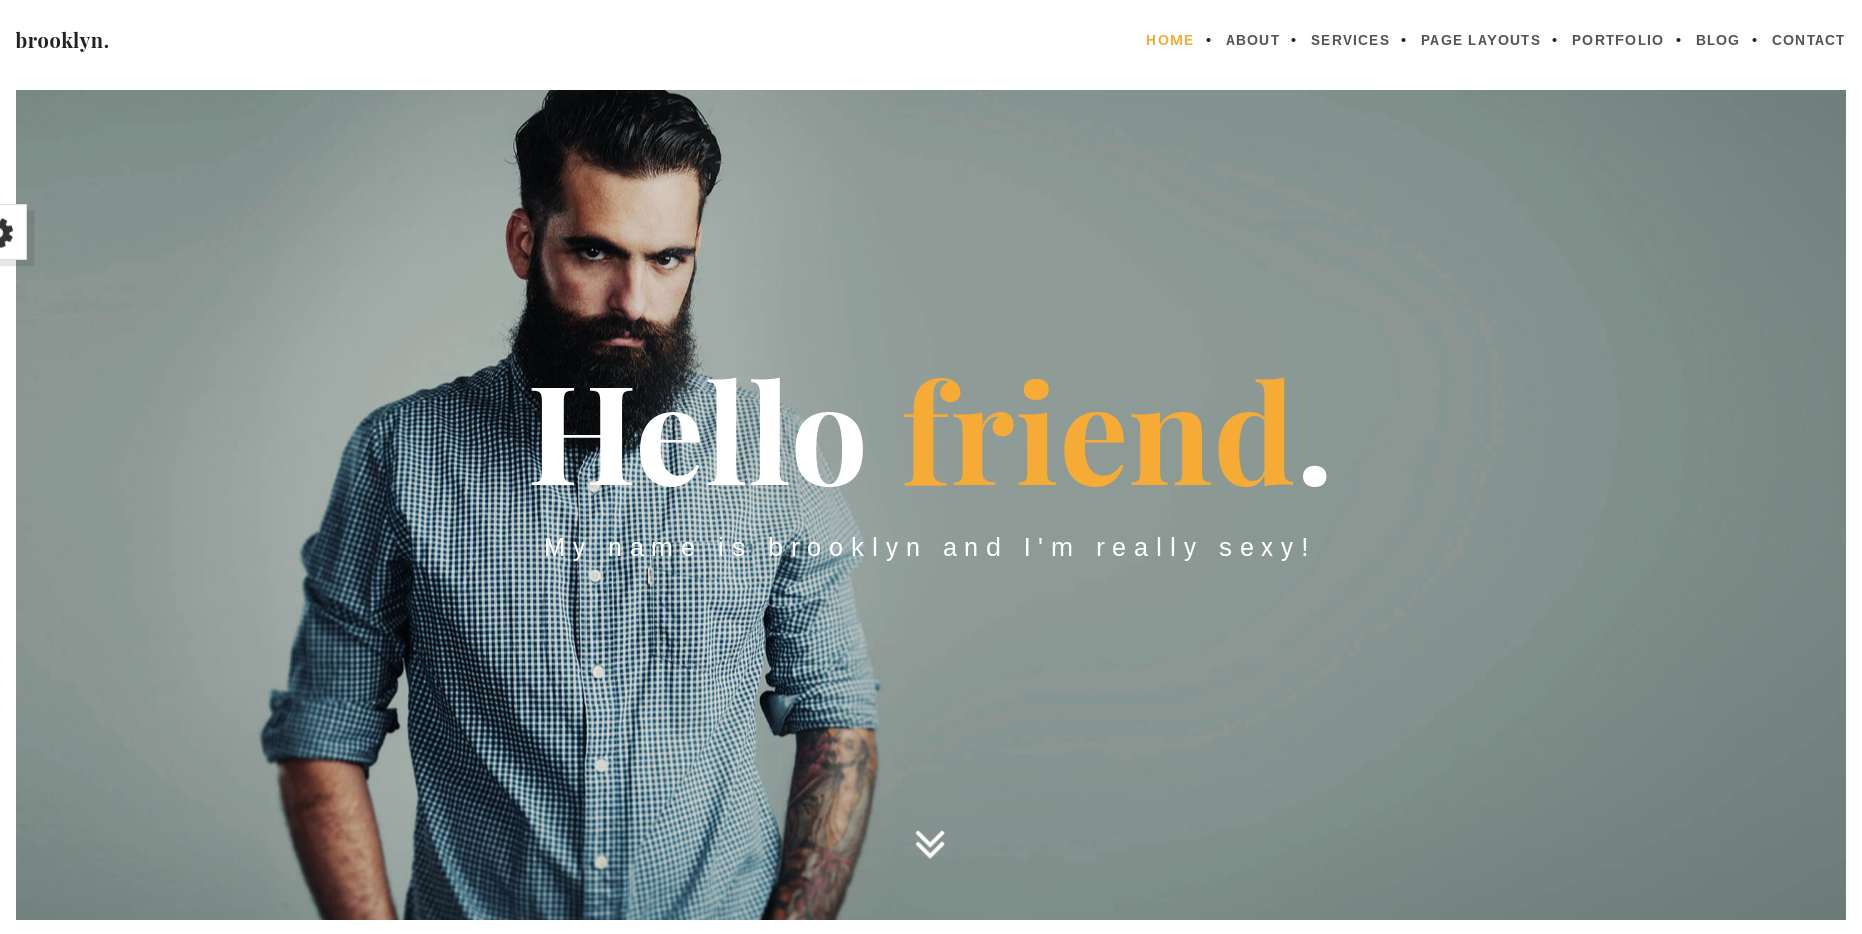 Brooklyn WordPress Theme Review